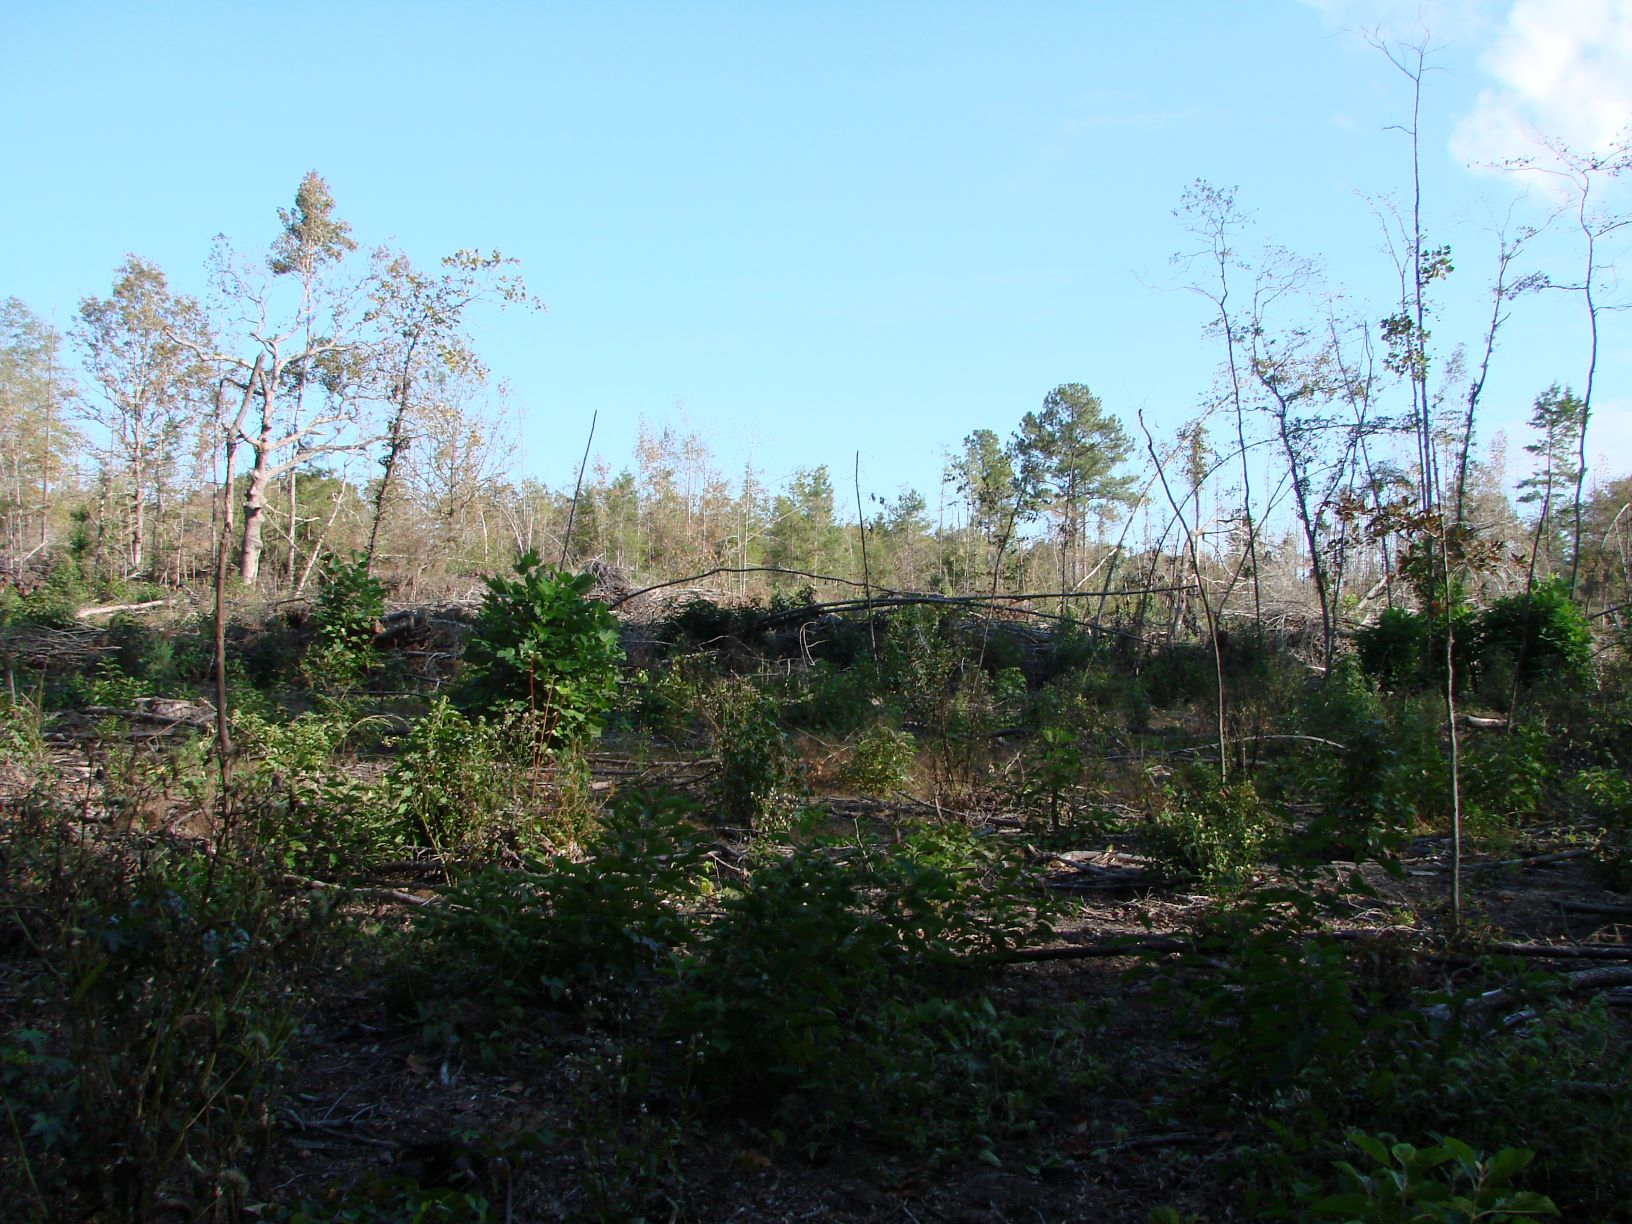 About 137 acres of recent clear-cut old fields would be easy to convert back to pasture